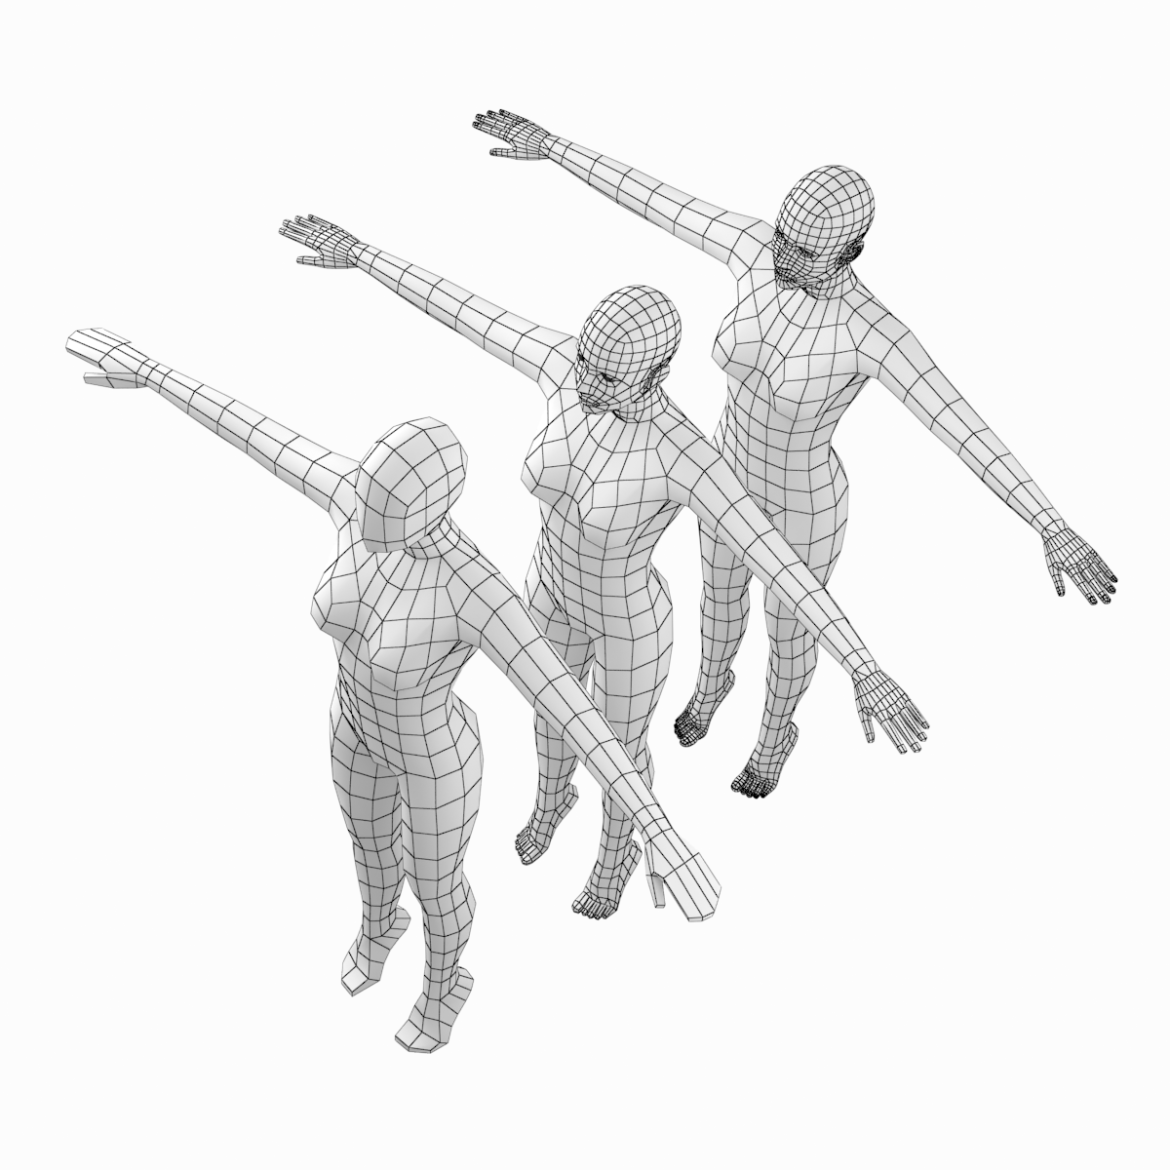 female body on toes base mesh in t-pose 3d model txt 3ds c4d dae dwg dxf fbx max ma mb obj stl png 305201